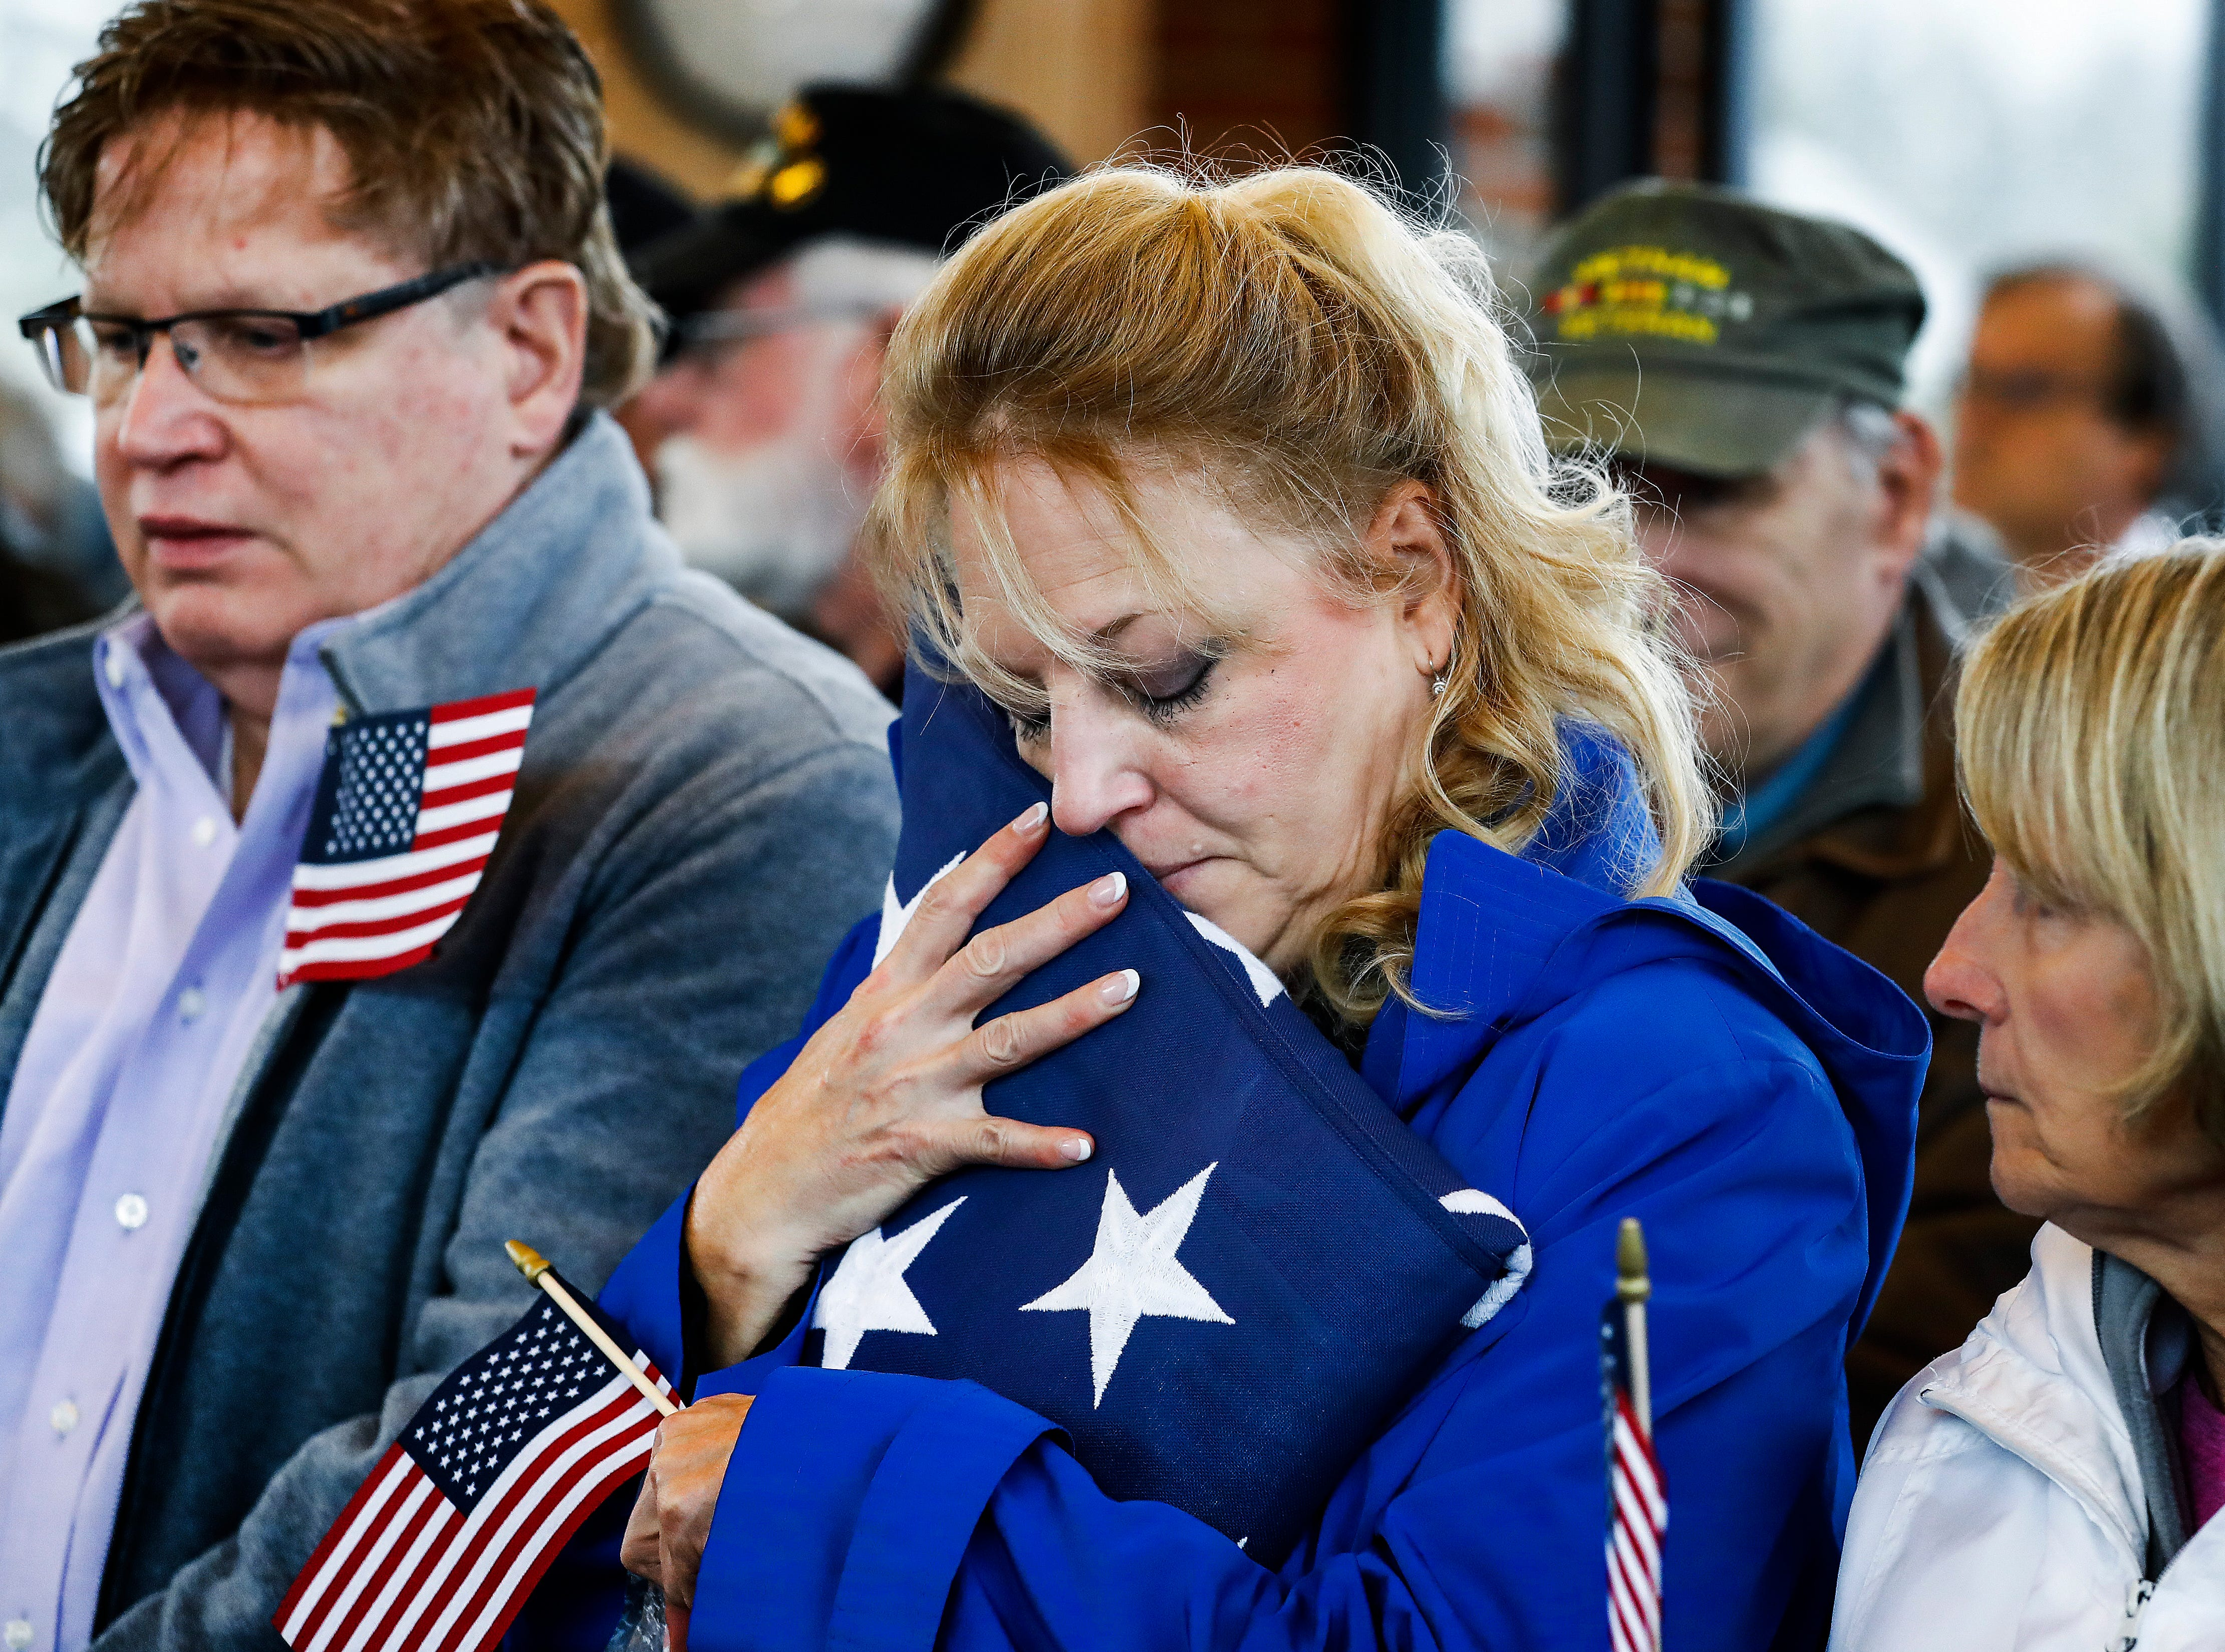 Scenes from a Committal Service with Military Honors for Wesley Russell, 76, Arnold Martin Klechka, 71, and Charles Bradley Fox, 60, who all died with no immediate family. The public was invited to take part their military funerals on Thursday, January 17, 2019.